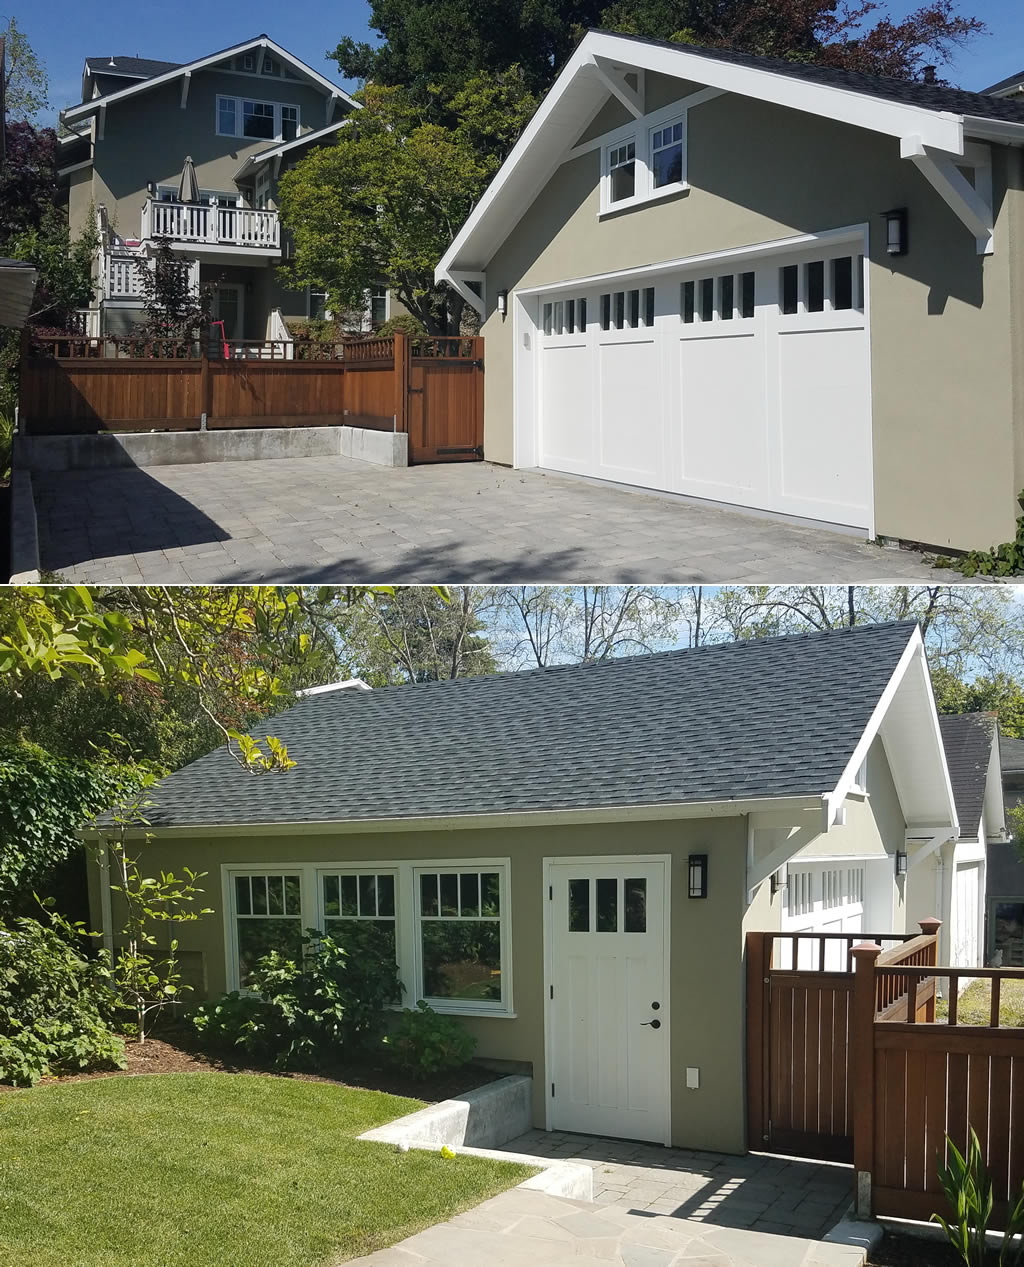 Piedmont Garage - Award Winning design by Studio G+S Architects, Berkeley